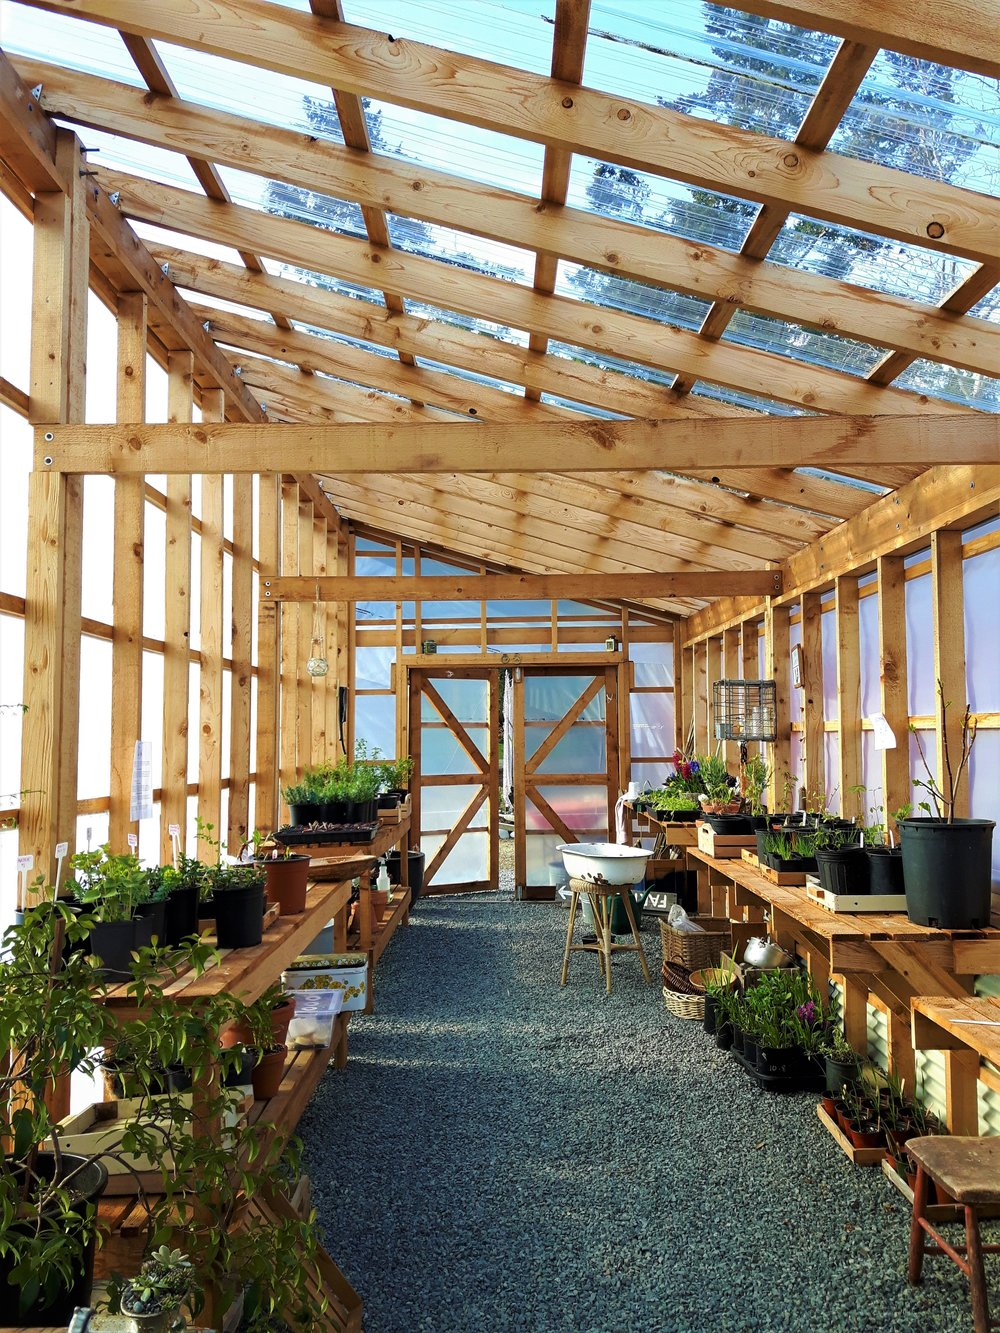 A little About Us - Back in 2015, Sue, a landscape designer, and Bill, a tugboat captain, moved from too busy Vancouver to Comox to live their dream by the sea and turn their half acre property of sand into a flower and vegetable farmstead. In 2017 they added a greenhouse and a farm stand.  2019 will usher in a new look for the farm as it evolves into a garden and nursery.